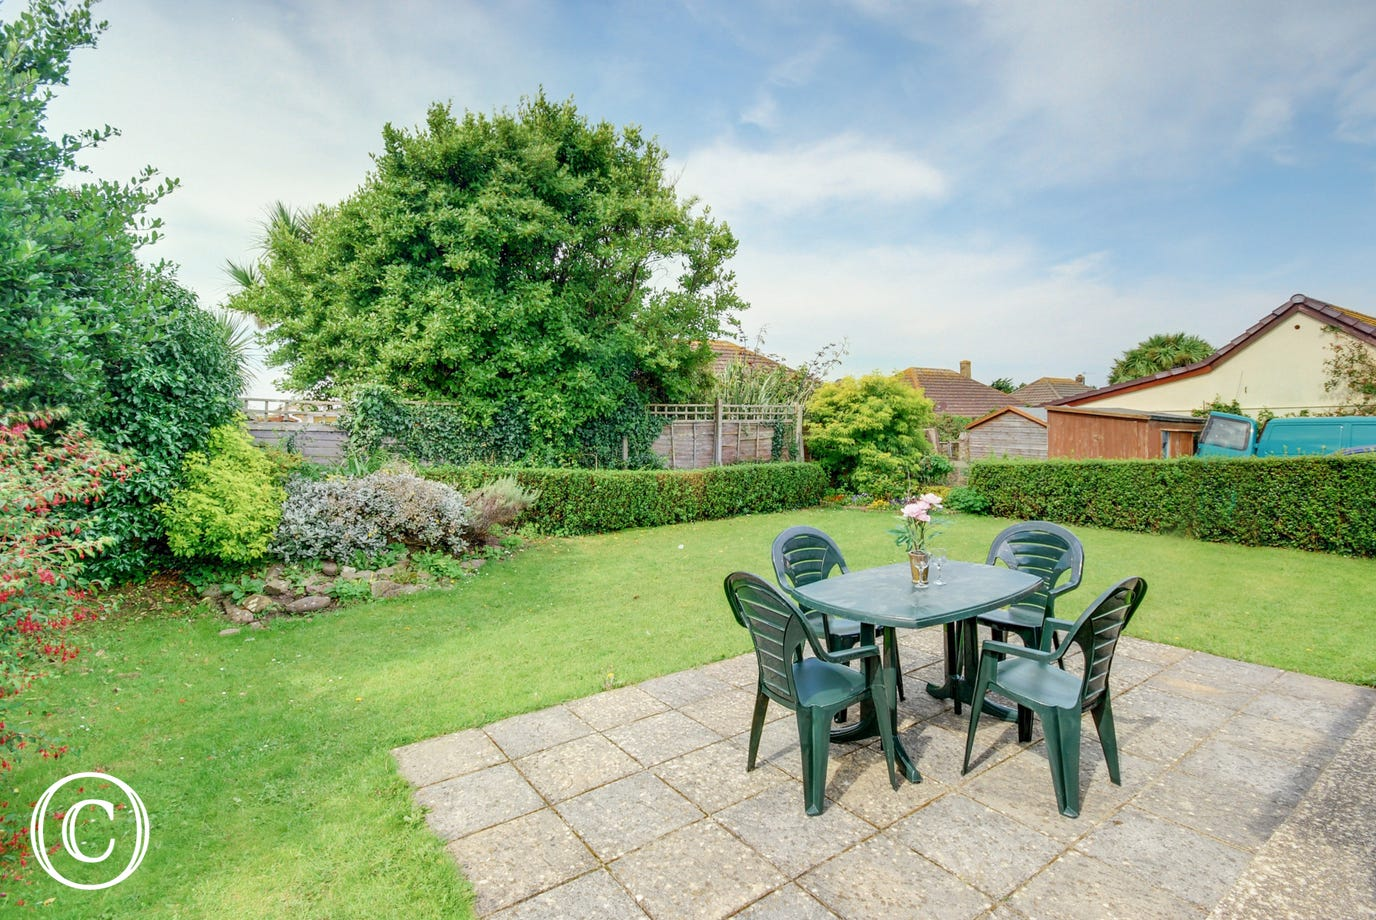 The private fully enclosed level lawned garden is situated at the rear